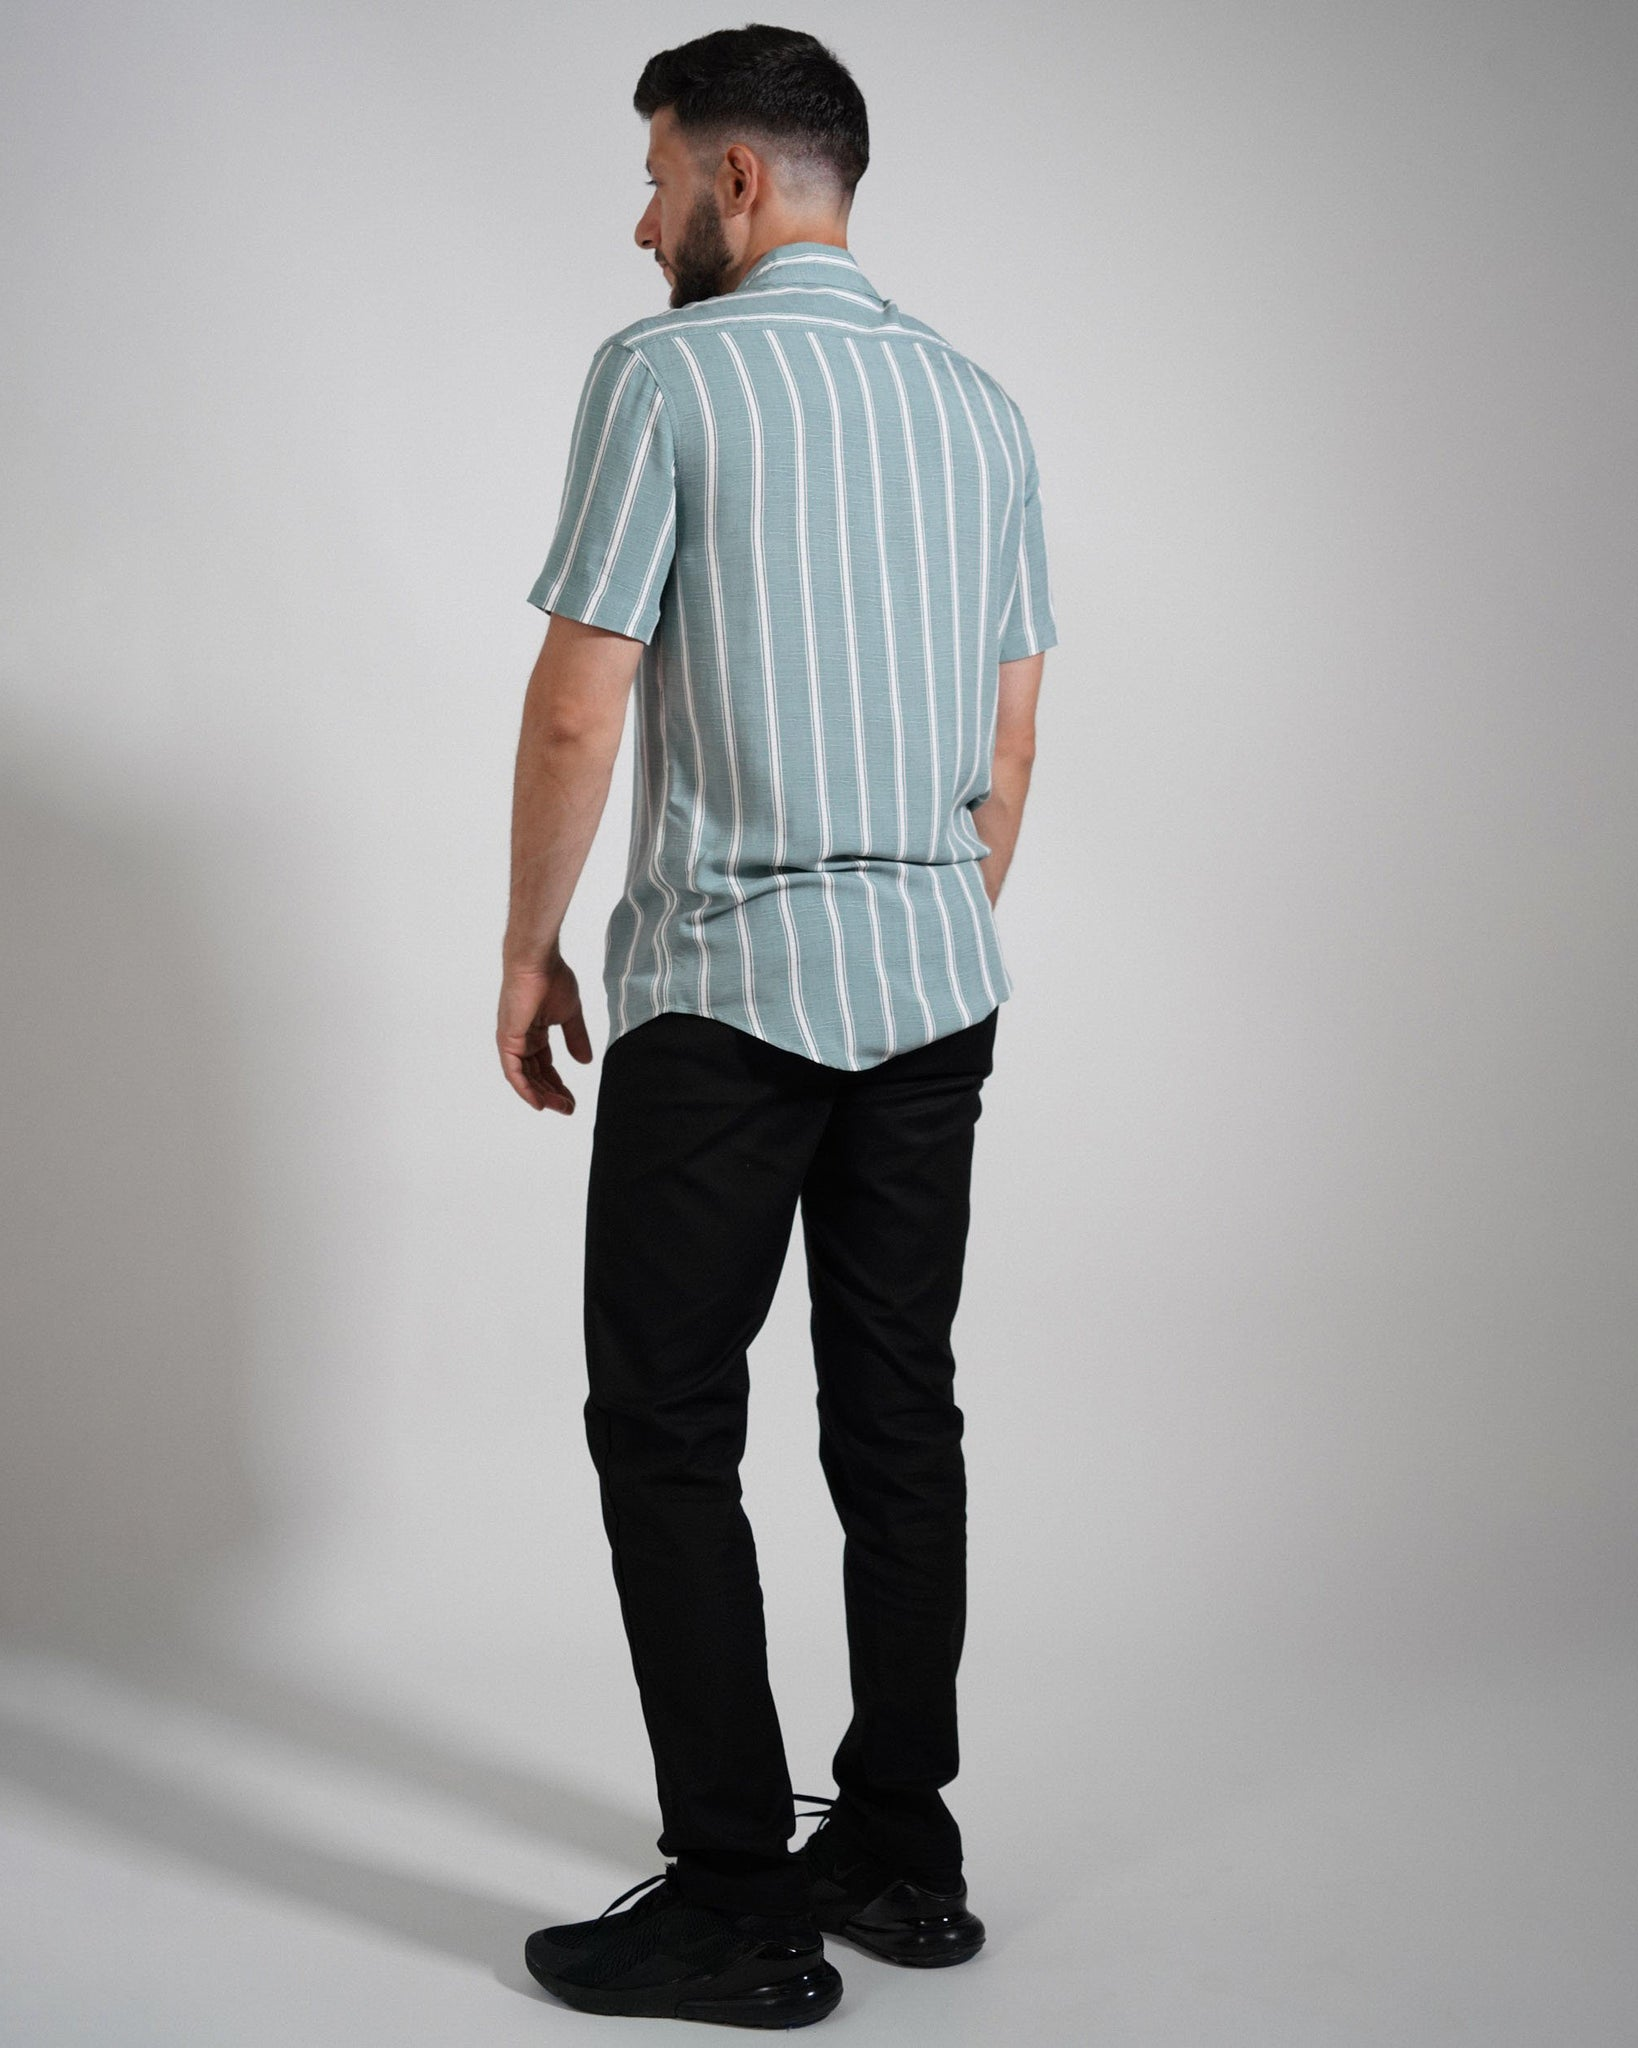 Green and White Striped Short Sleeve Shirt - Life in Paradigm Menswear London